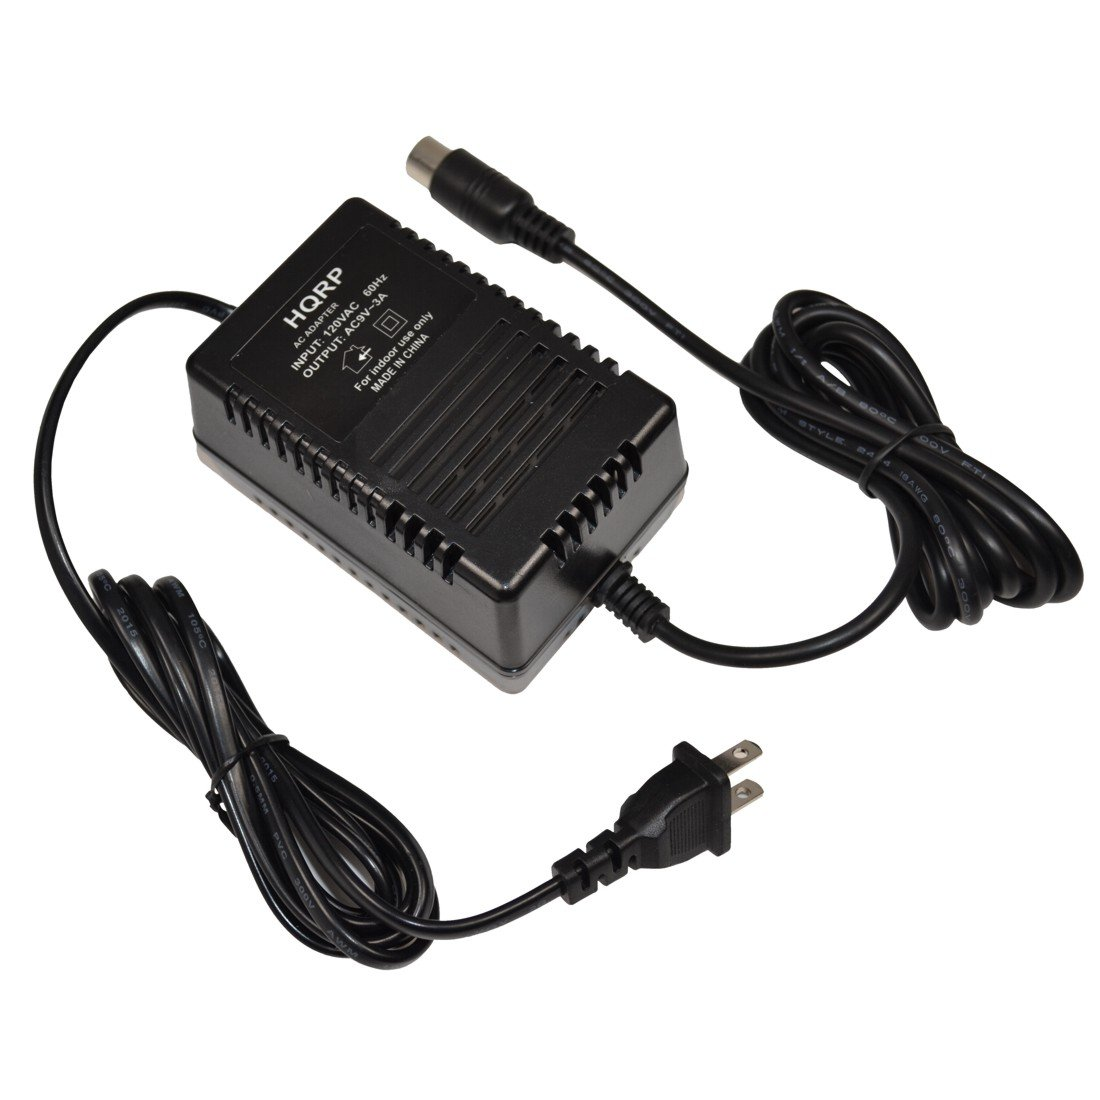 HQRP 9V AC Adapter for Alesis P4 AC09 25D 4-pin DIN Connector 9V AC Power Supply Replacement fits QSR DMPro drum machine MIDI Data Disk Quadraverb GT Quadraverb Quadraverb 2 S4 + Euro Plug